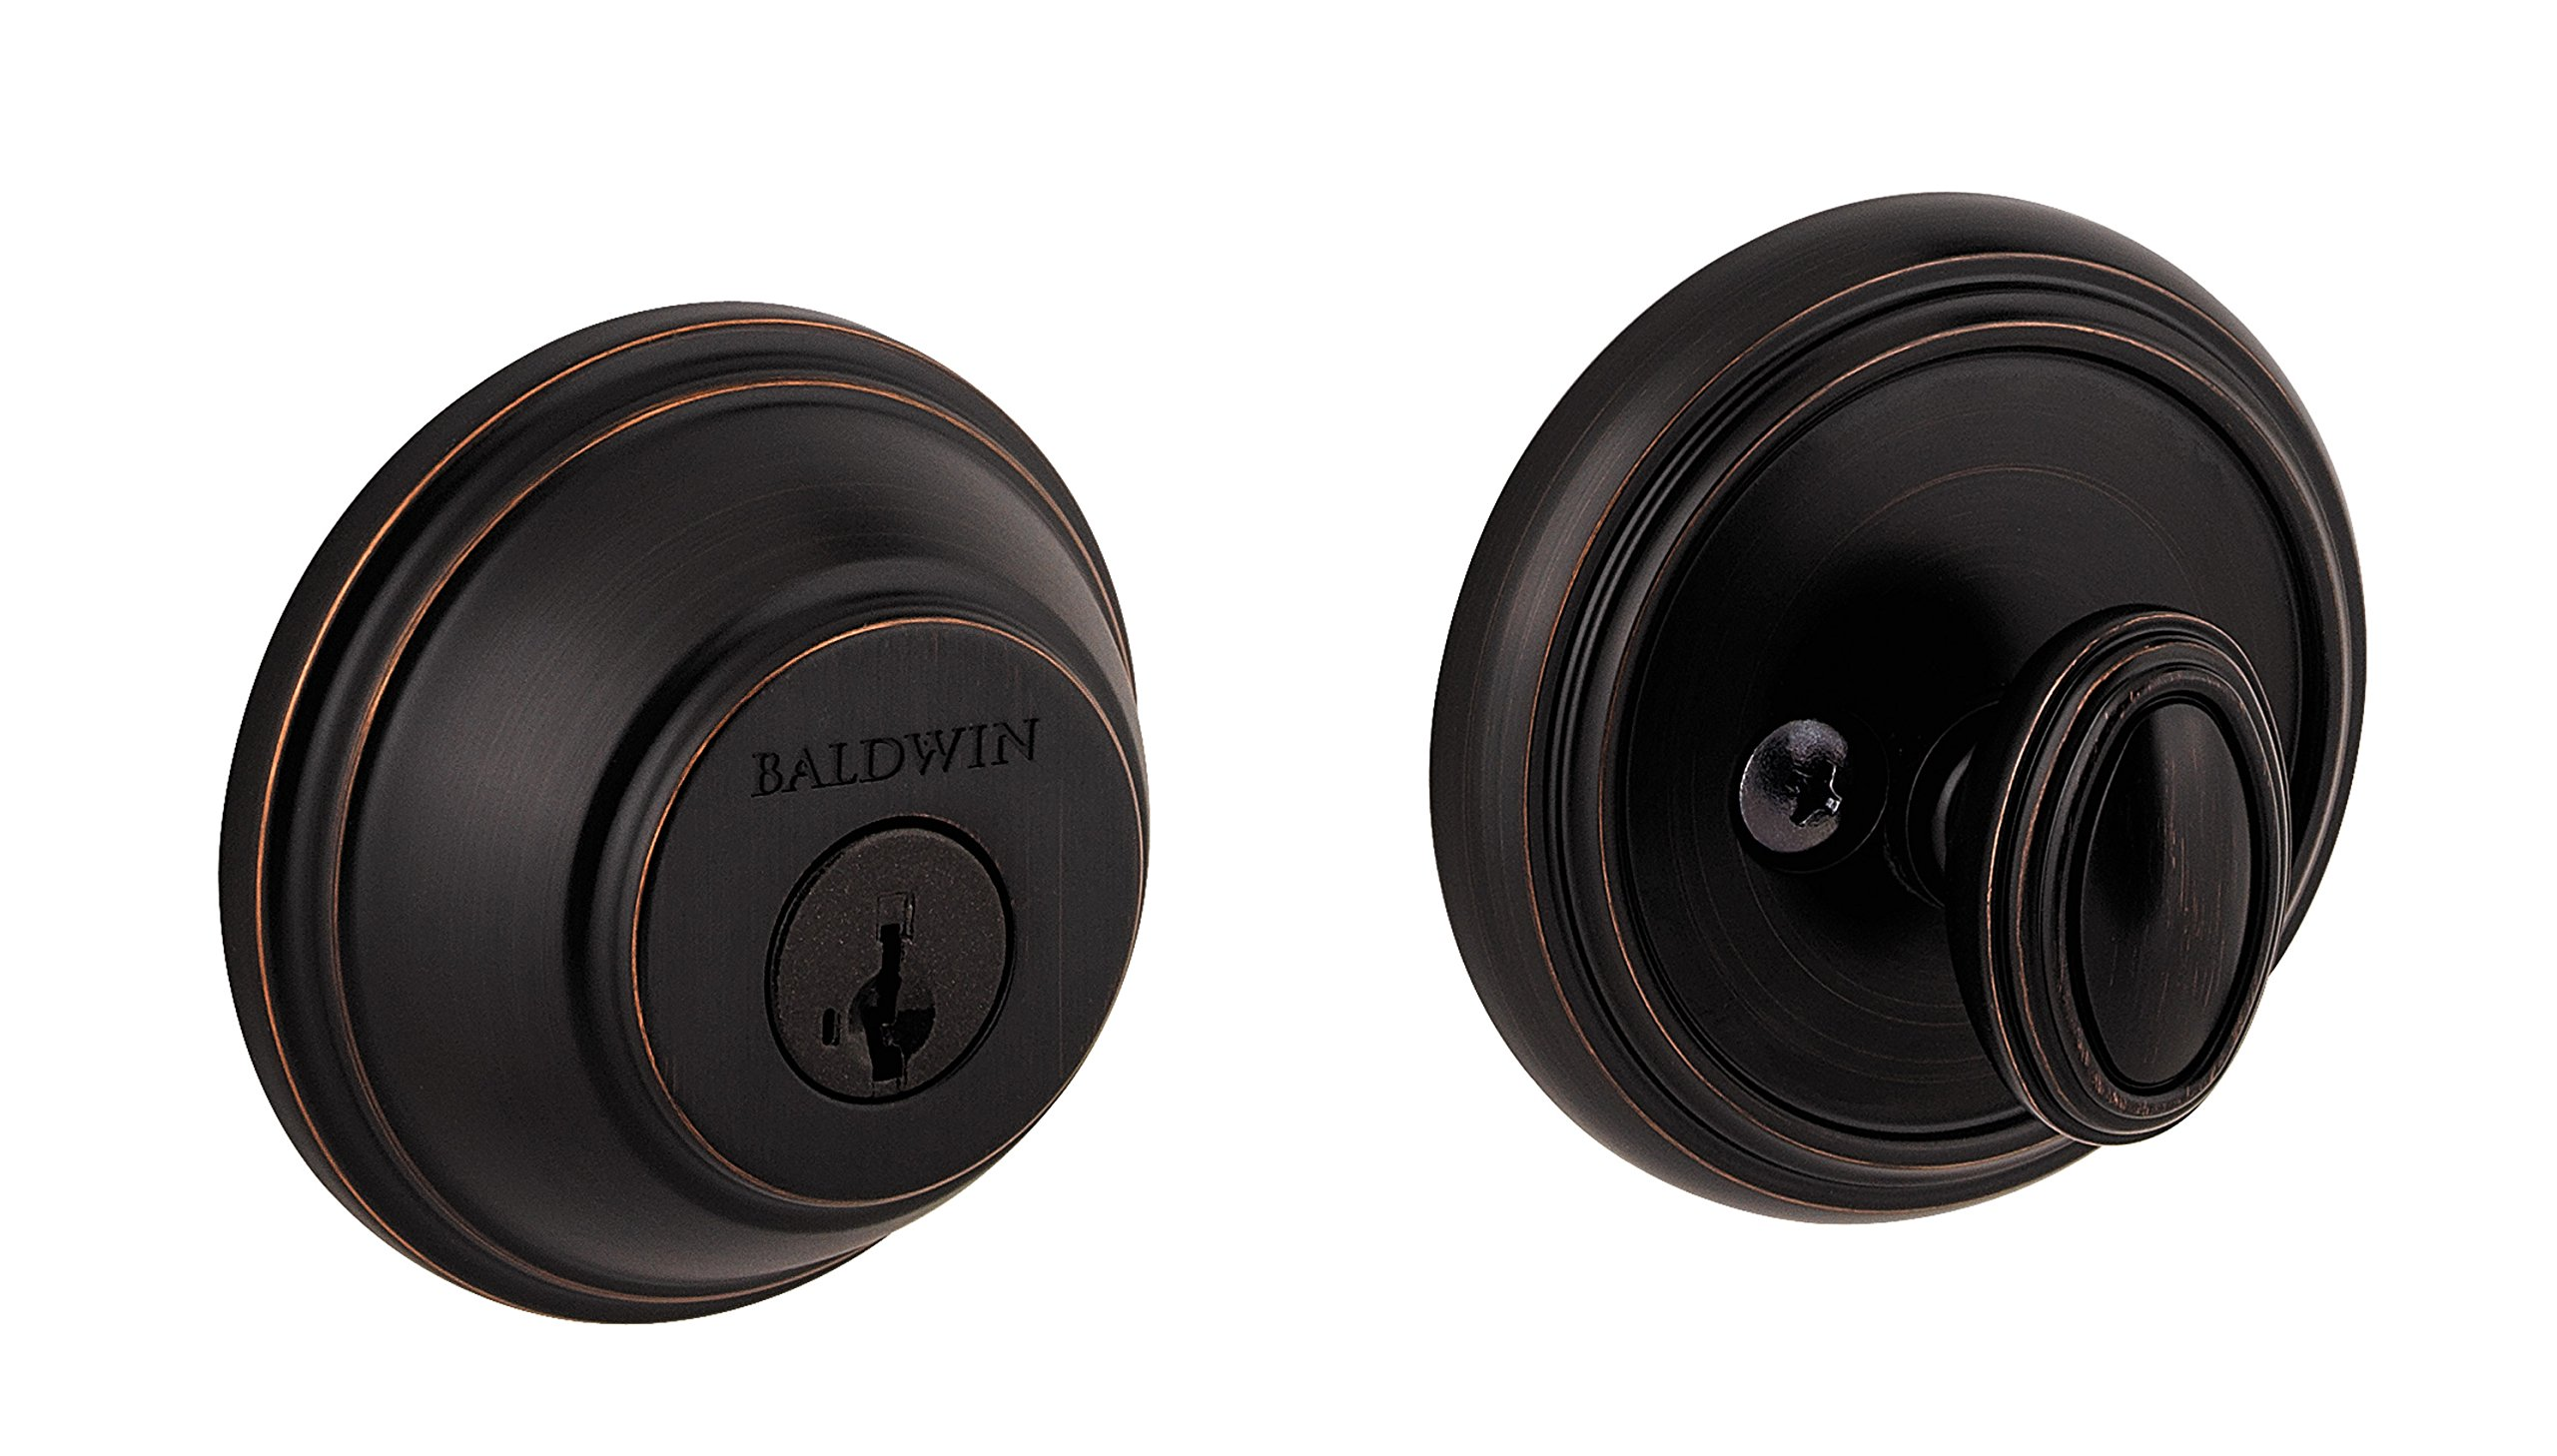 Baldwin Prestige 380 Round Single Cylinder Deadbolt Featuring SmartKey in Venetian Bronze